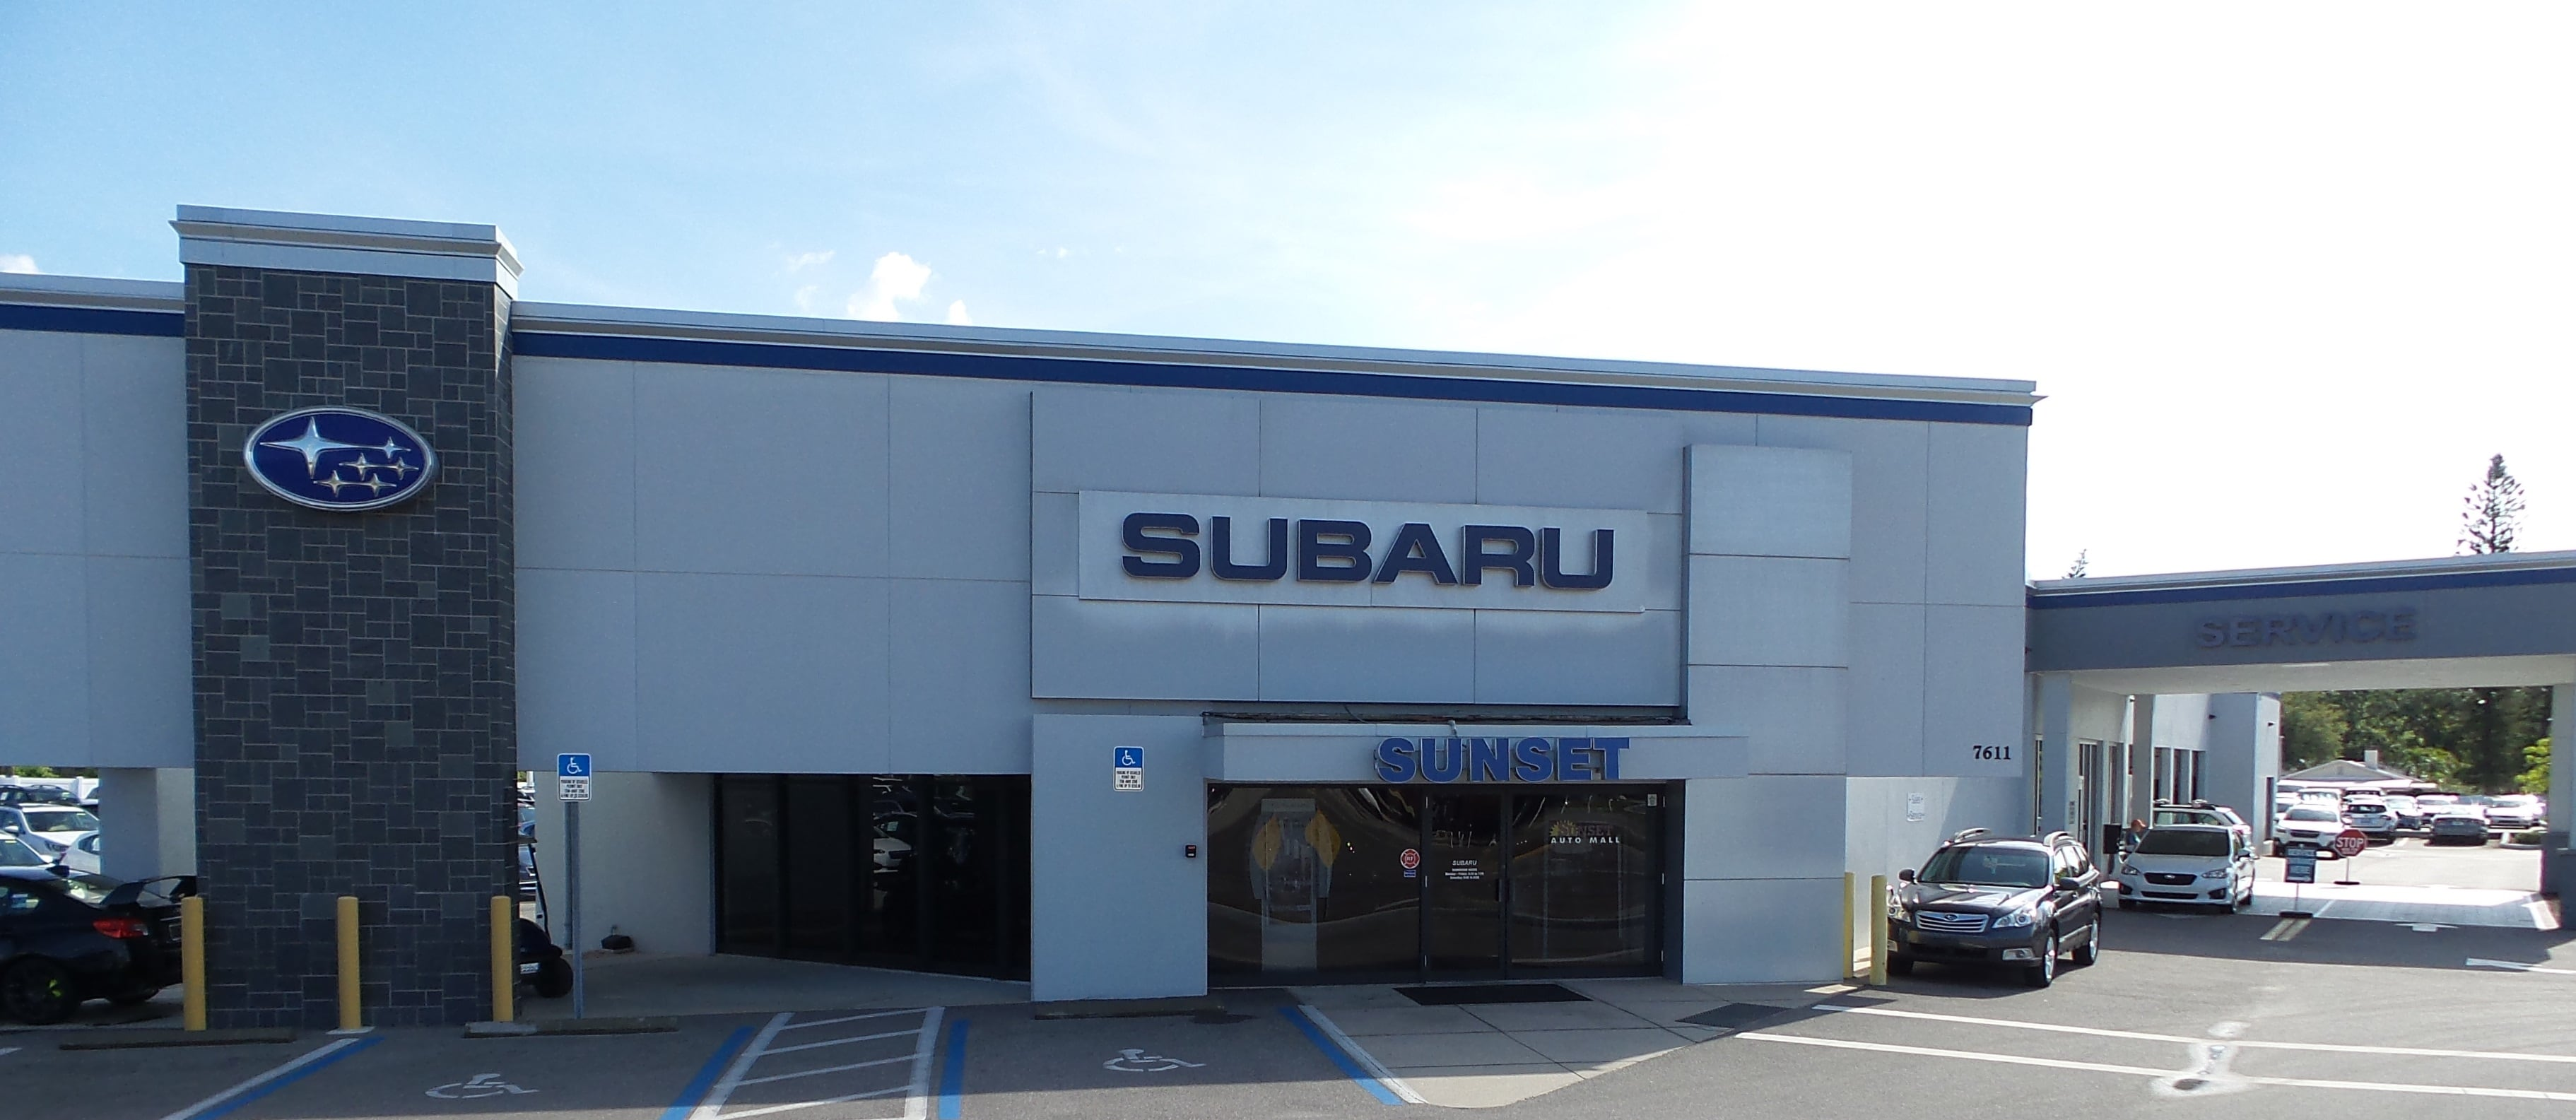 Browse The New Subaru Line Up Through Our Online Showroom